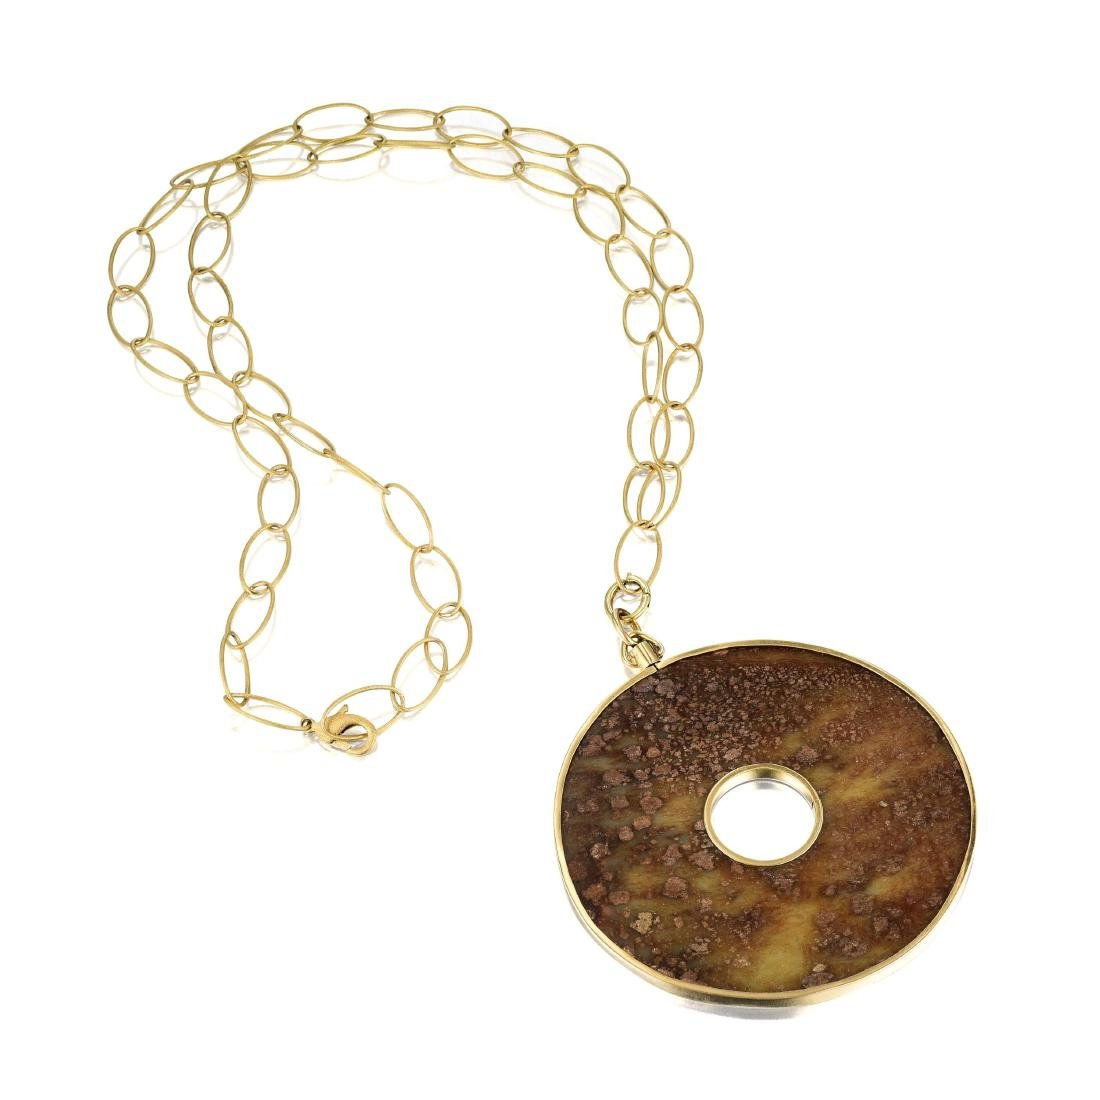 A 14K Gold and Jade Pendant Necklace - 2